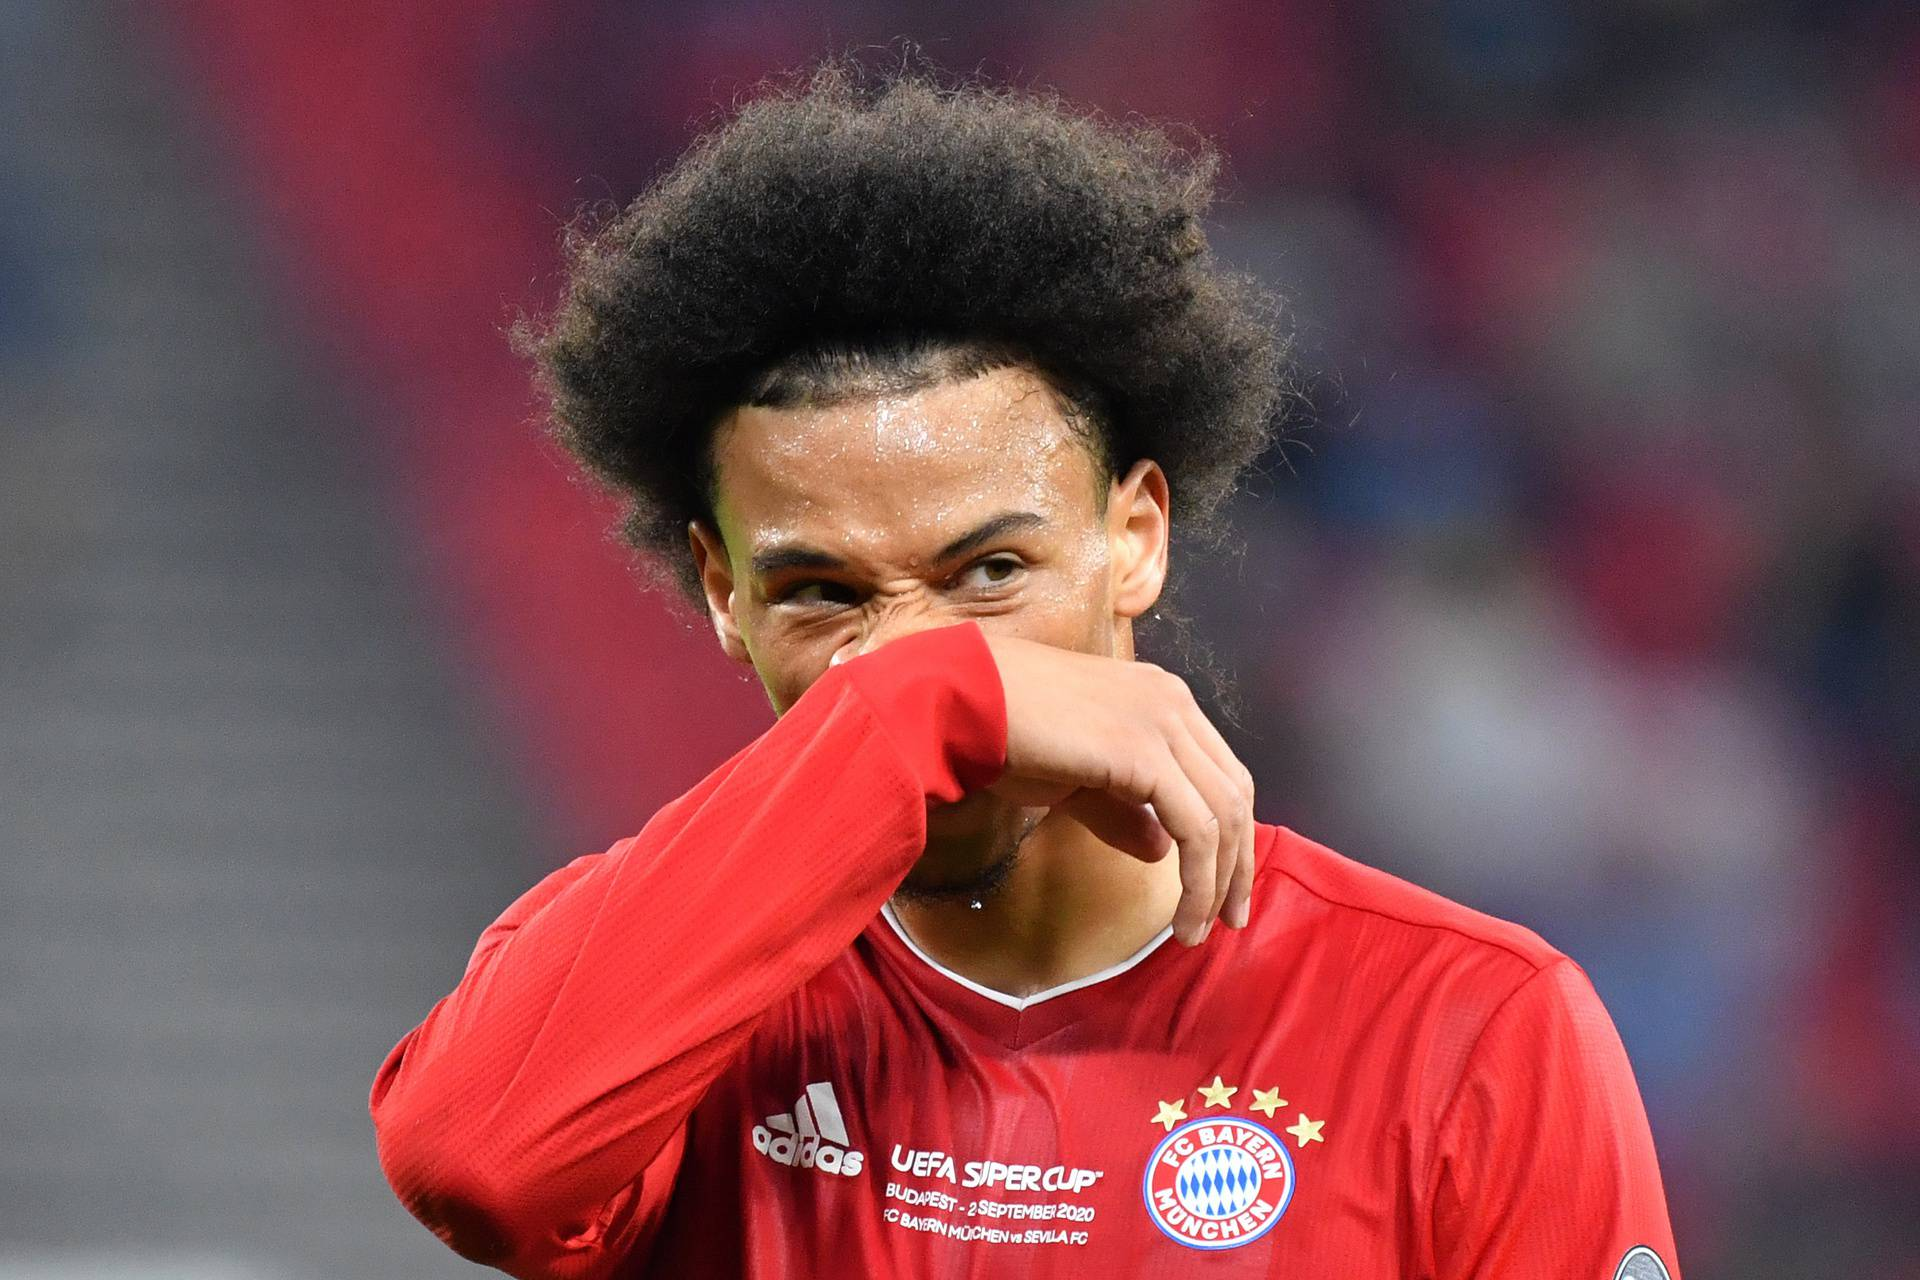 Leroy SANE (FC Bayern Munich) is injured due to a capsule injury.